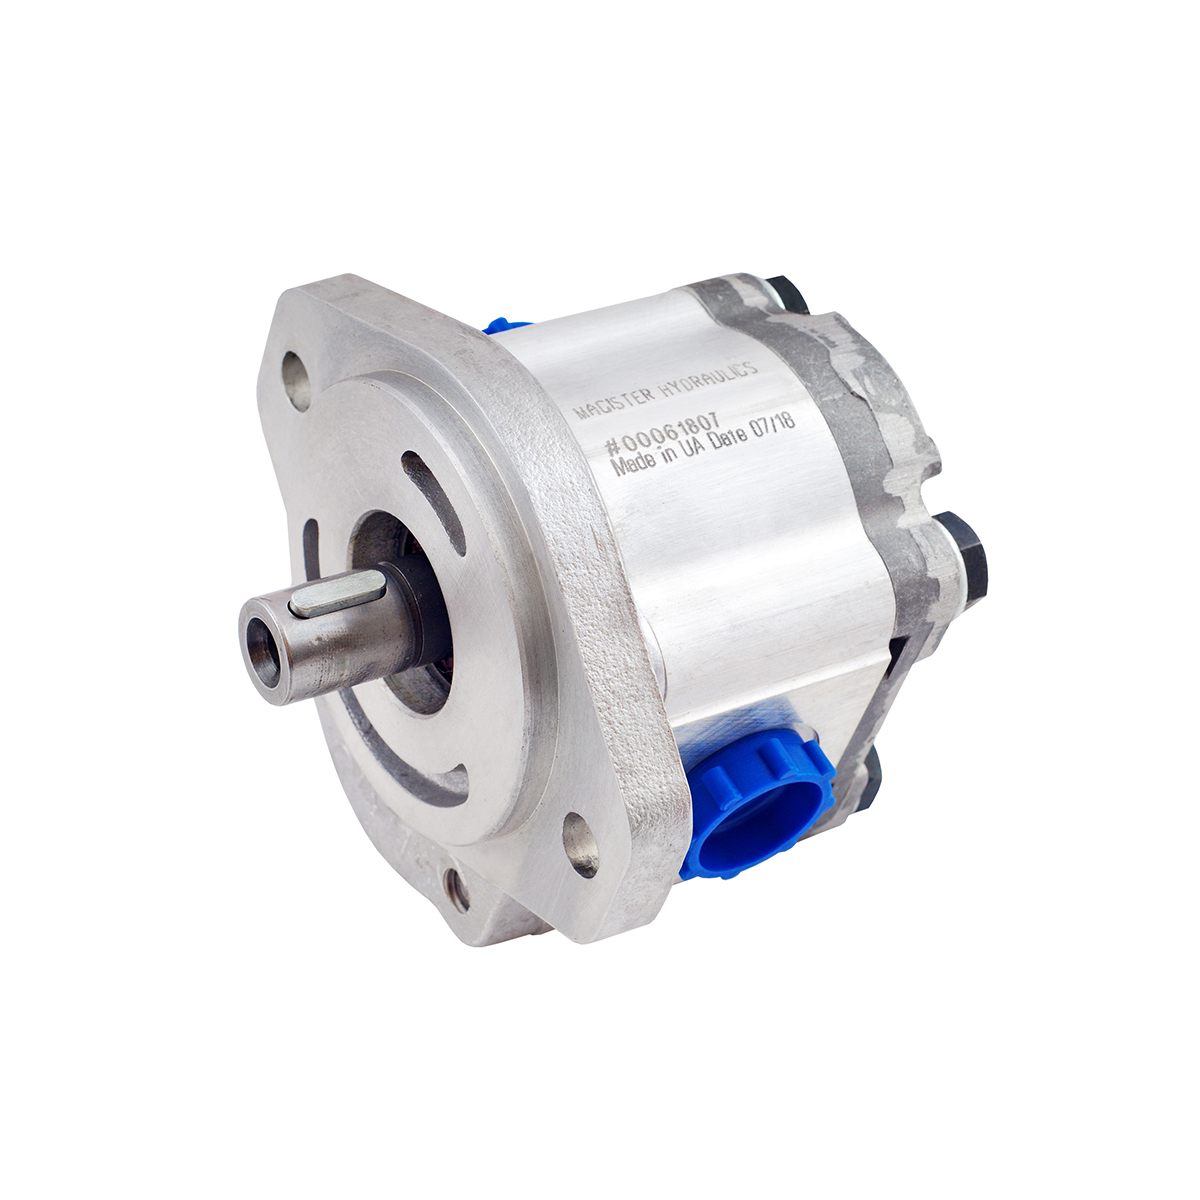 0.76 CID hydraulic gear pump, 5/8 keyed shaft clockwise gear pump | Magister Hydraulics